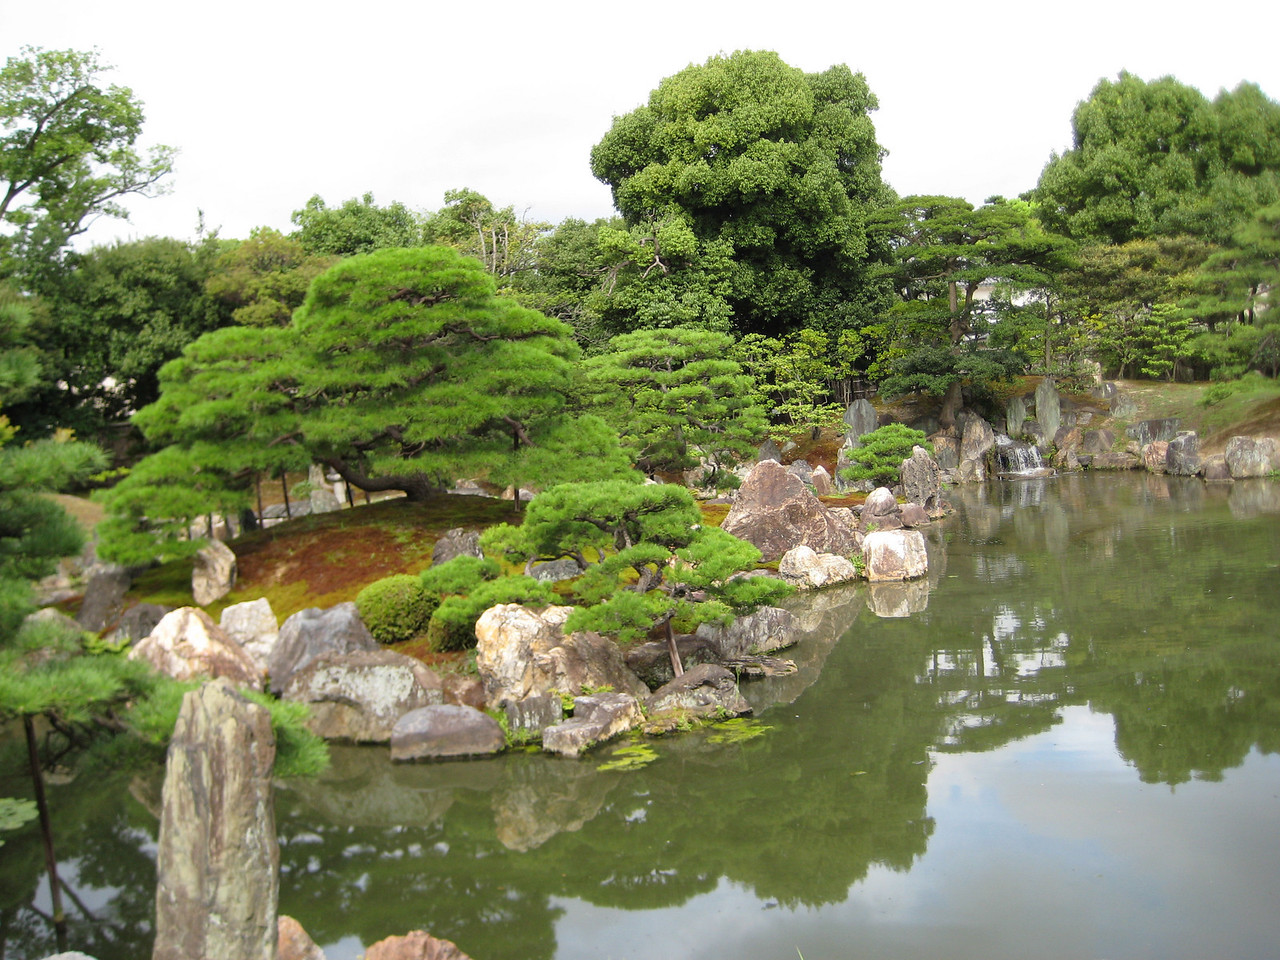 Pictured here is the main island that lies in the center of the pond. It is called Mt. Horai and, according to our guidebook, here once lived a legendary hermit with miraculous powers.